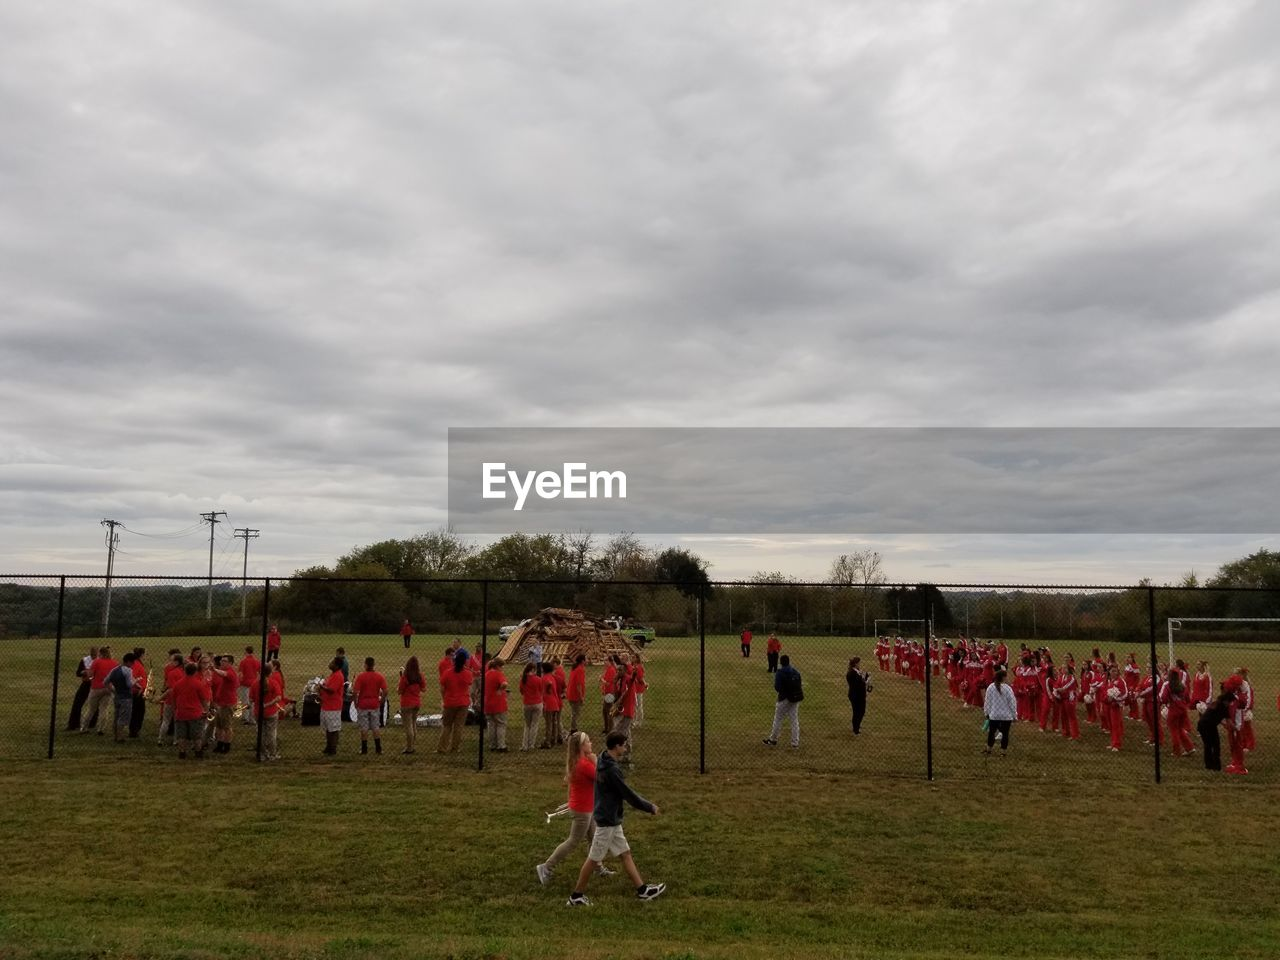 large group of people, cloud - sky, sport, field, competitive sport, real people, sky, men, sports clothing, team sport, playing, sports team, sports uniform, playing field, competition, togetherness, teamwork, exercising, lifestyles, leisure activity, outdoors, grass, day, soccer player, nature, adult, people